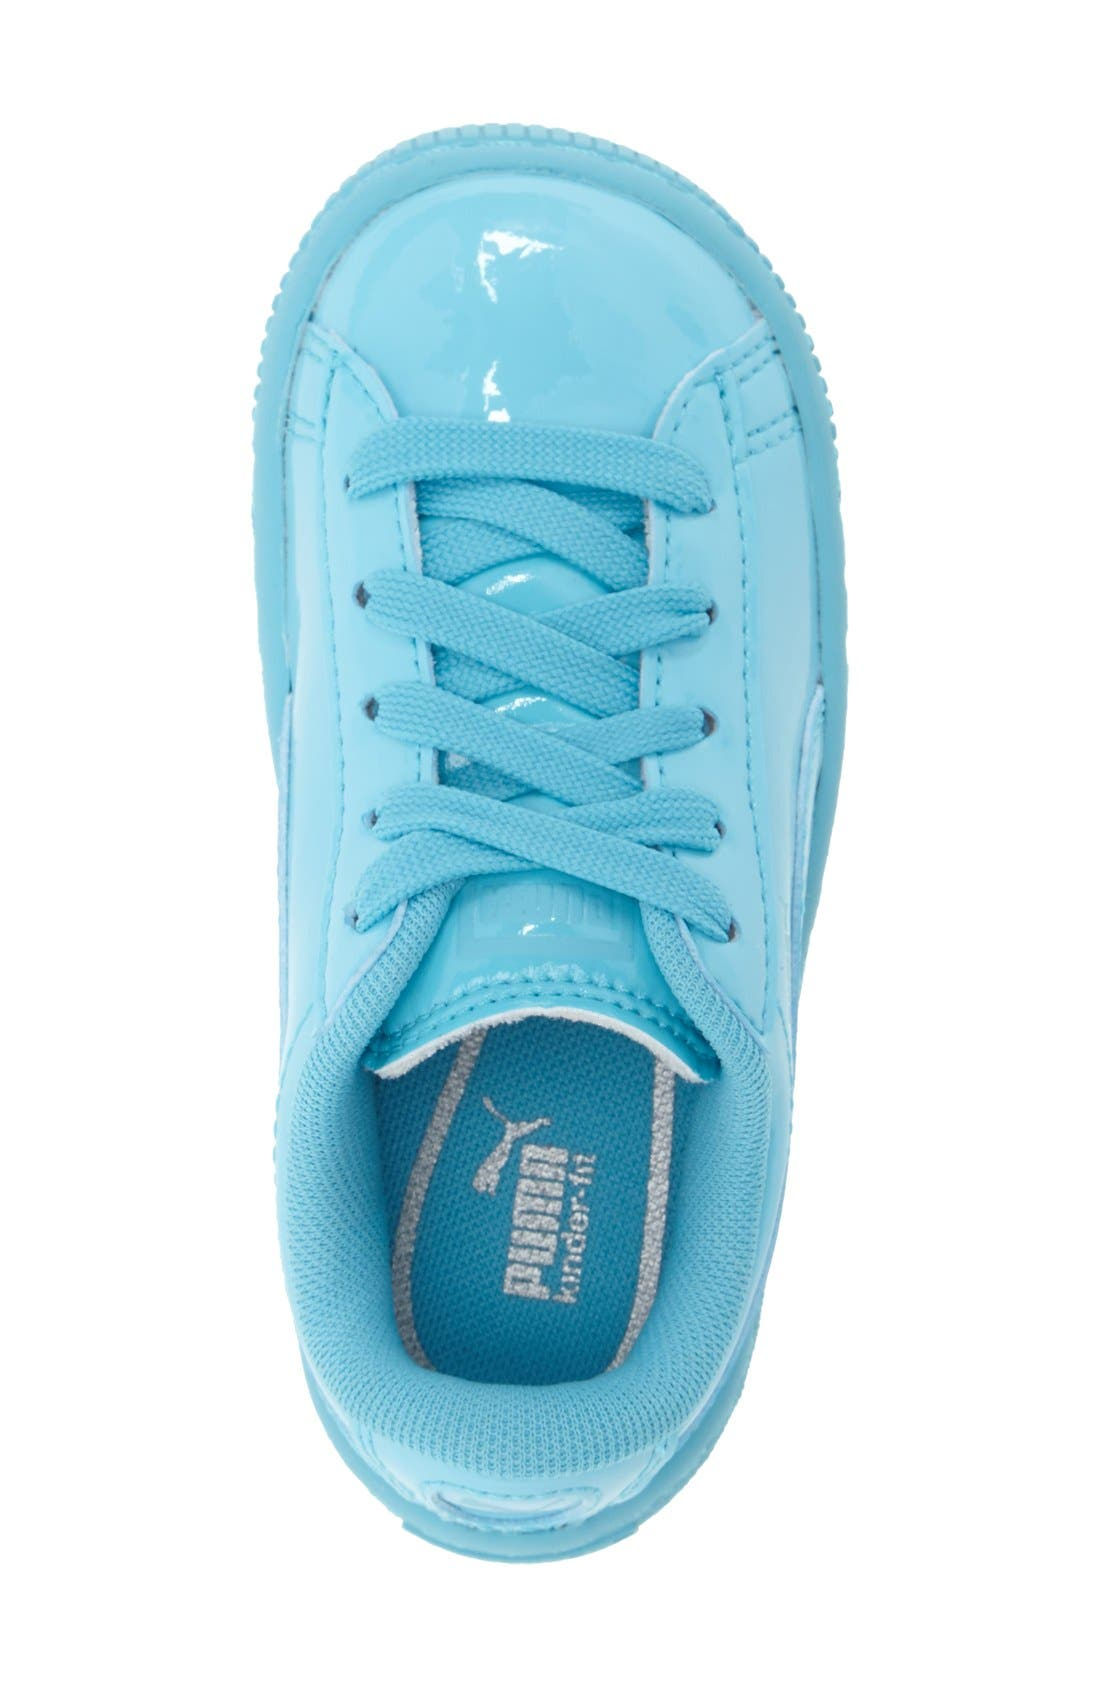 'Basket Classic' Shoe,                             Alternate thumbnail 3, color,                             Blue Atoll-Blue Atoll